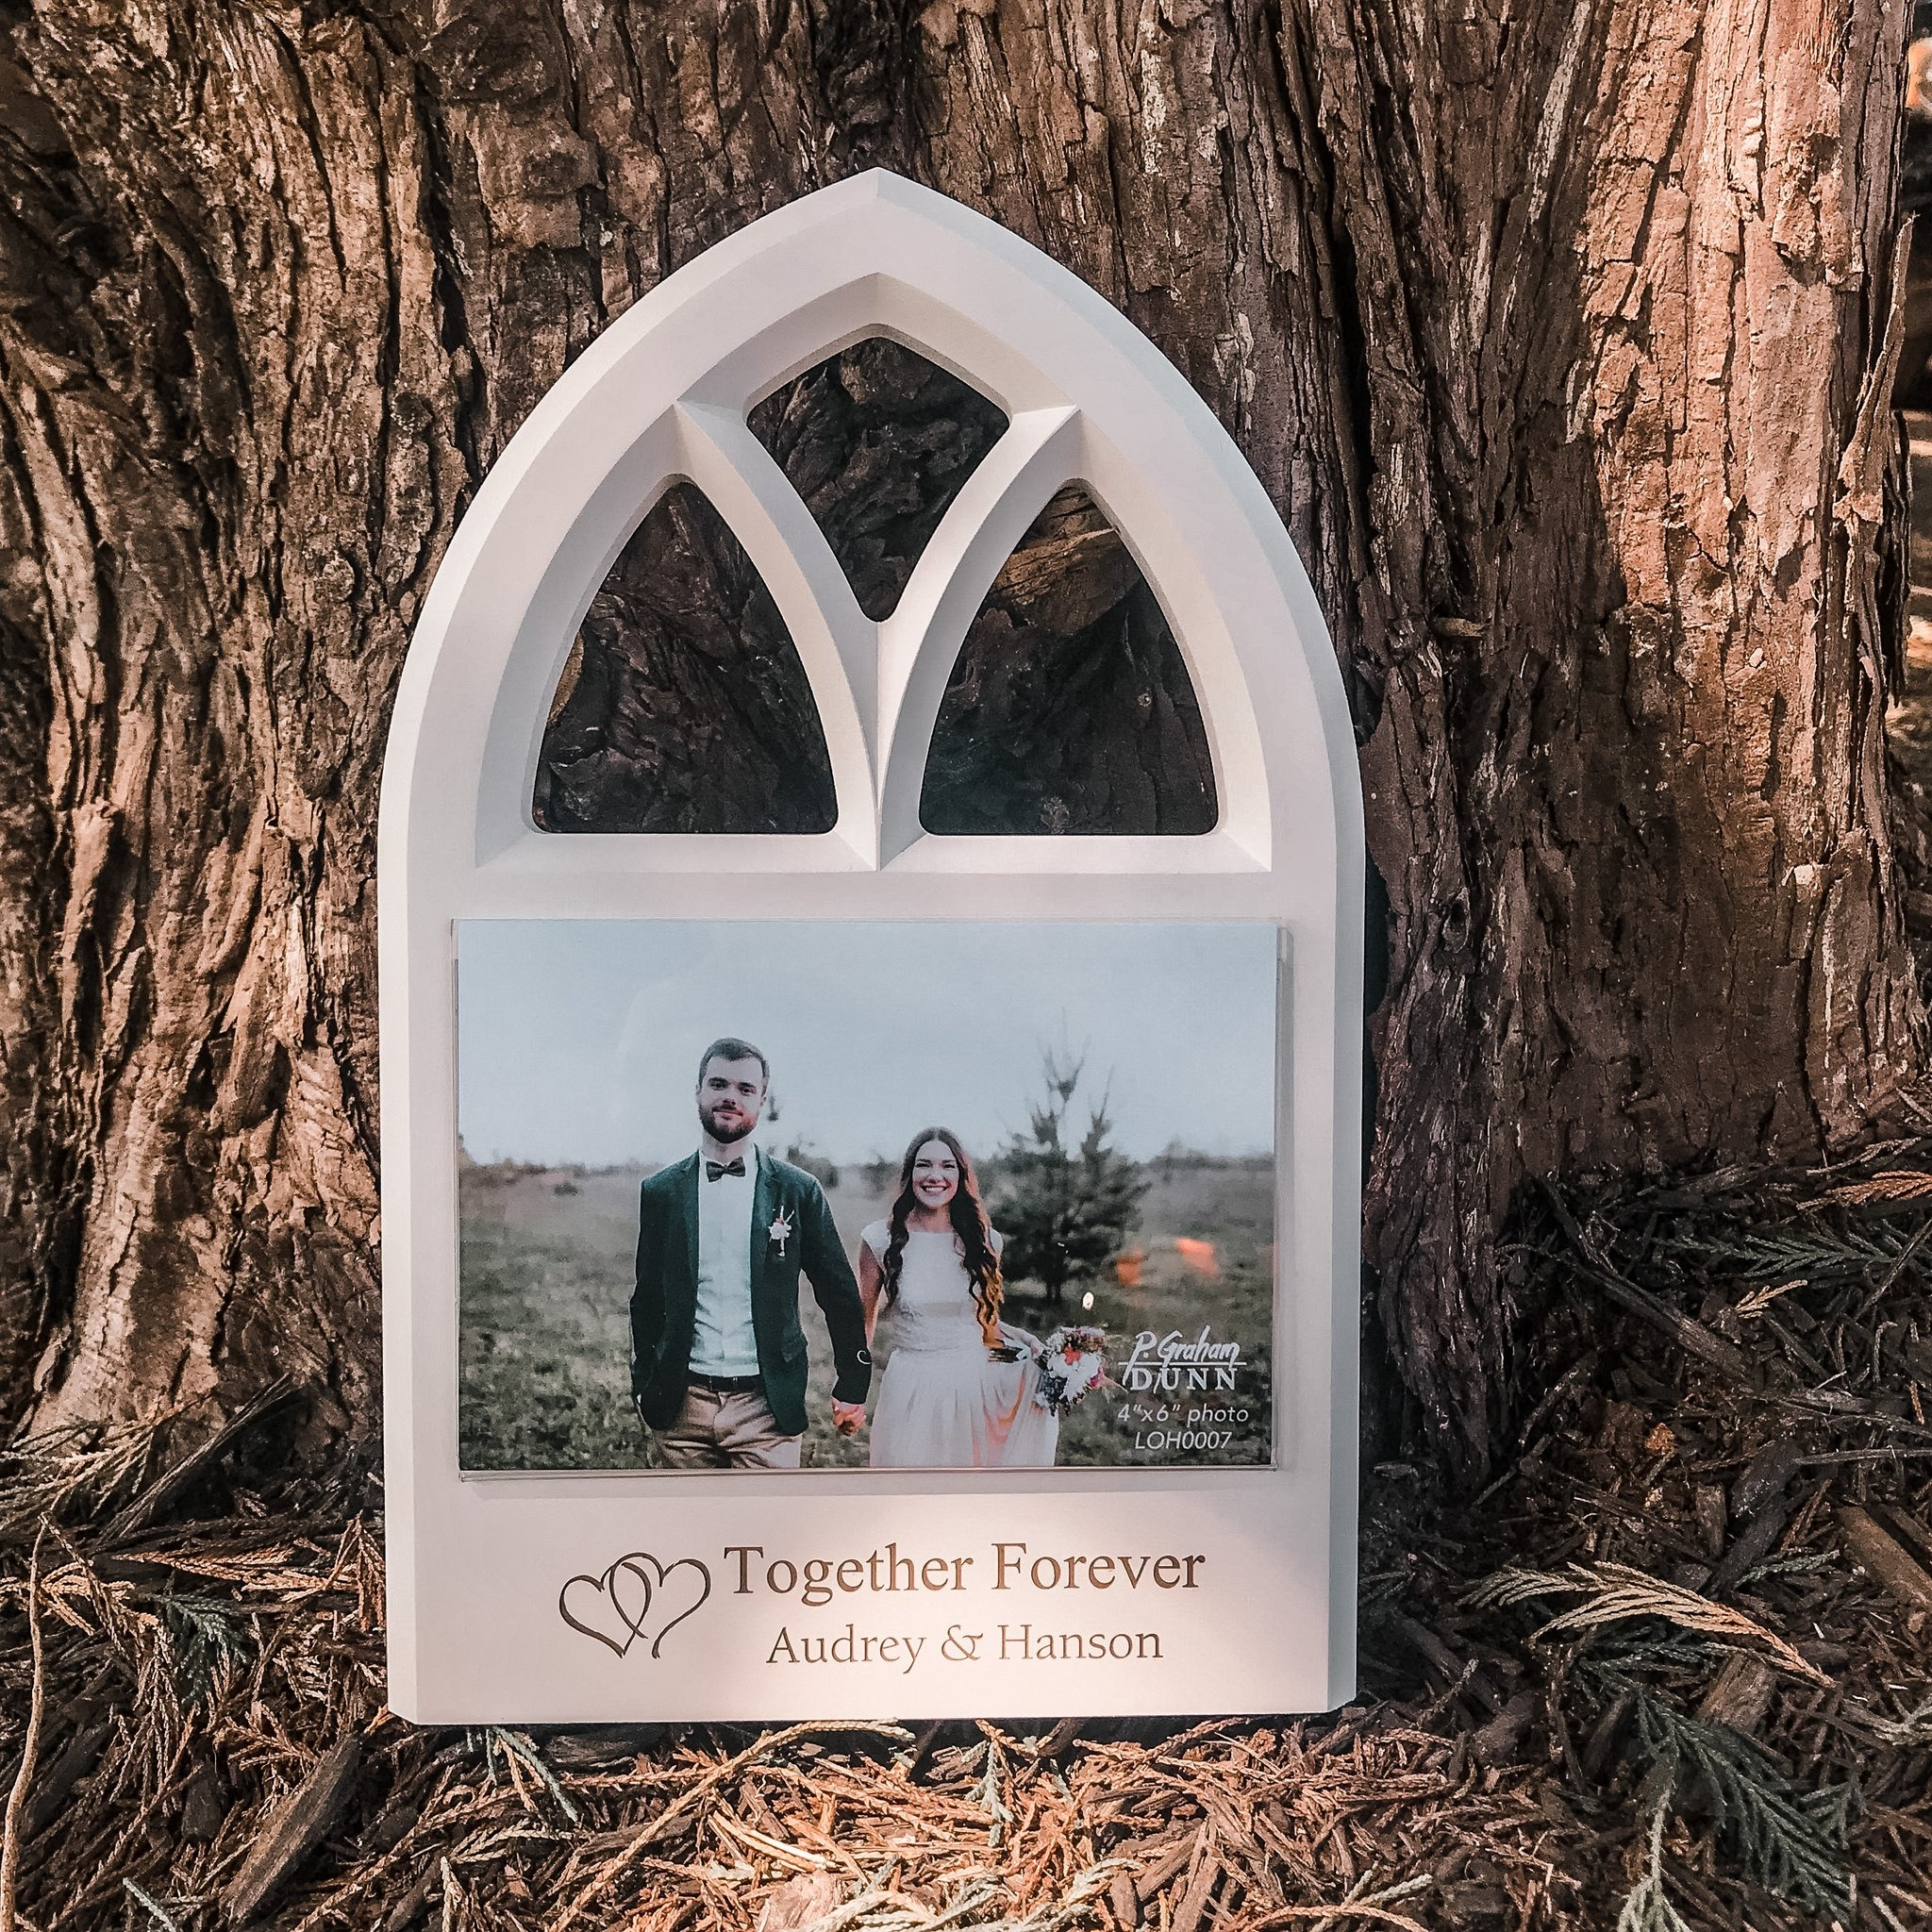 White Window Photo Frame